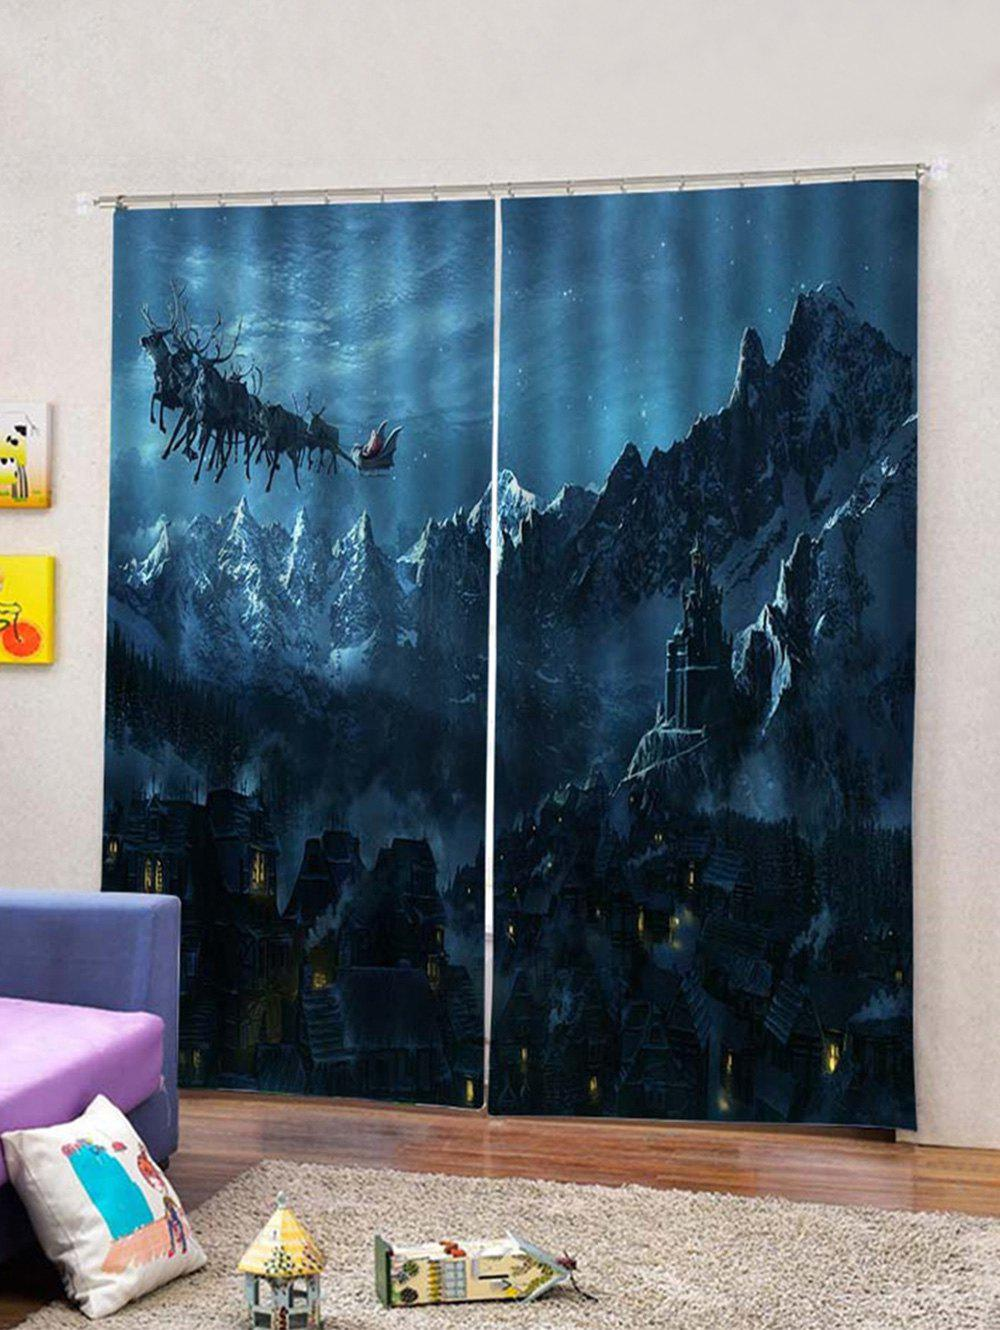 Discount 2Pcs Christmas Night and Town Window Curtains